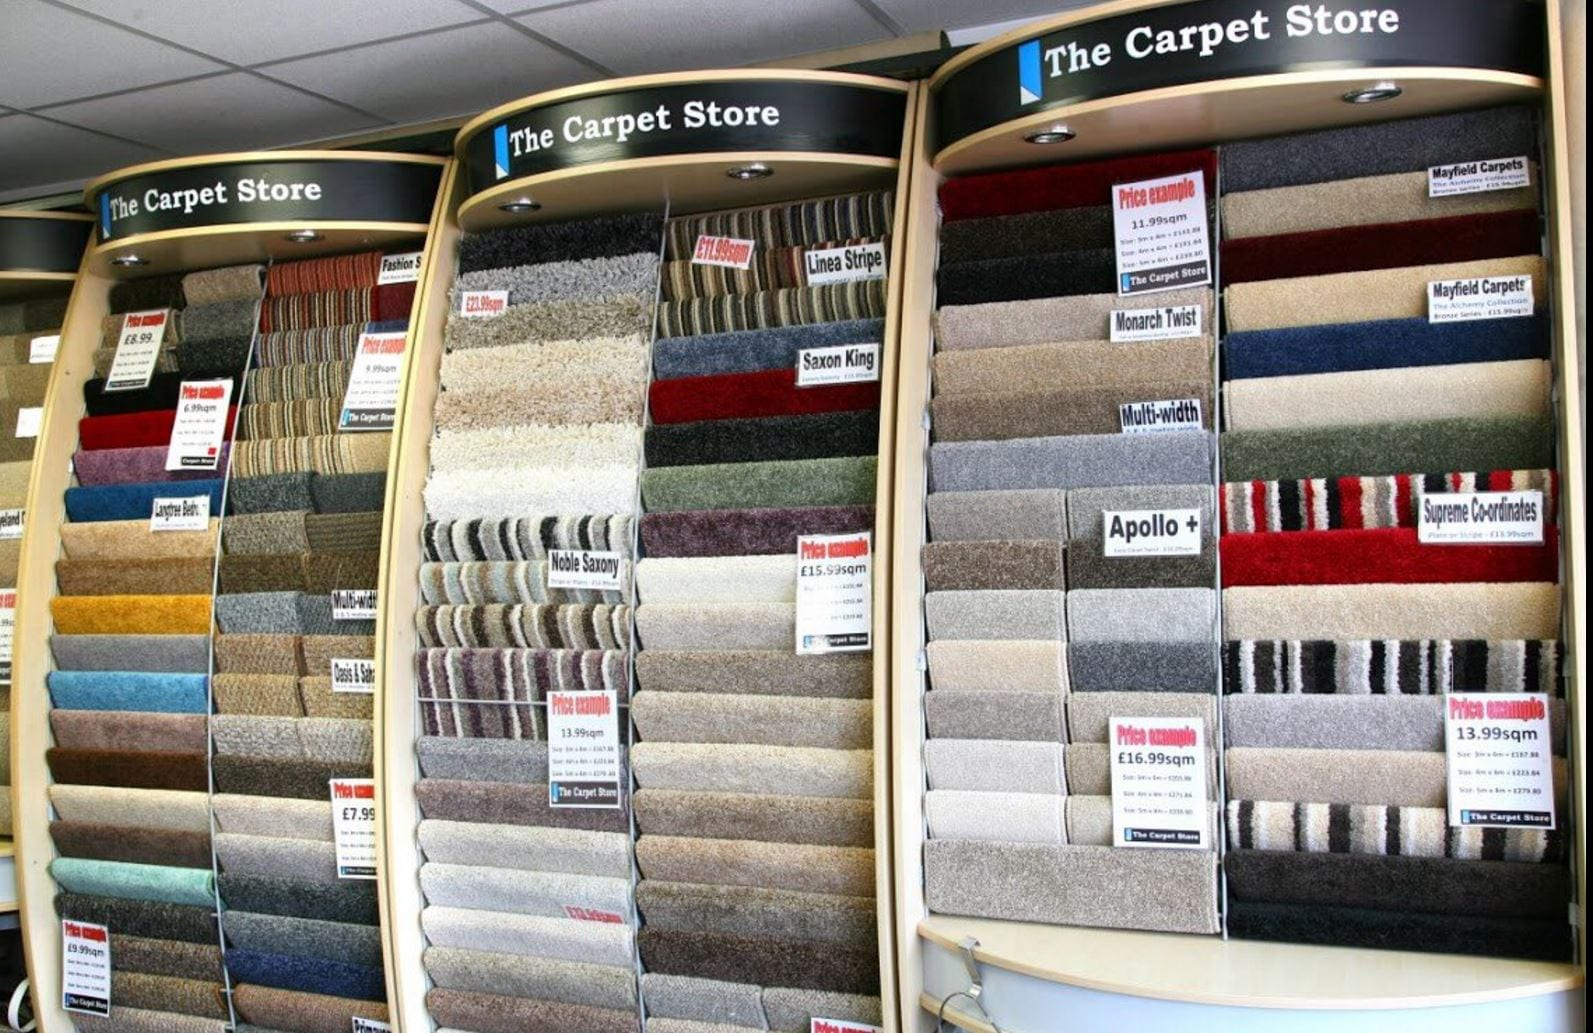 Carpet swatches at The Carpet Store Poulton